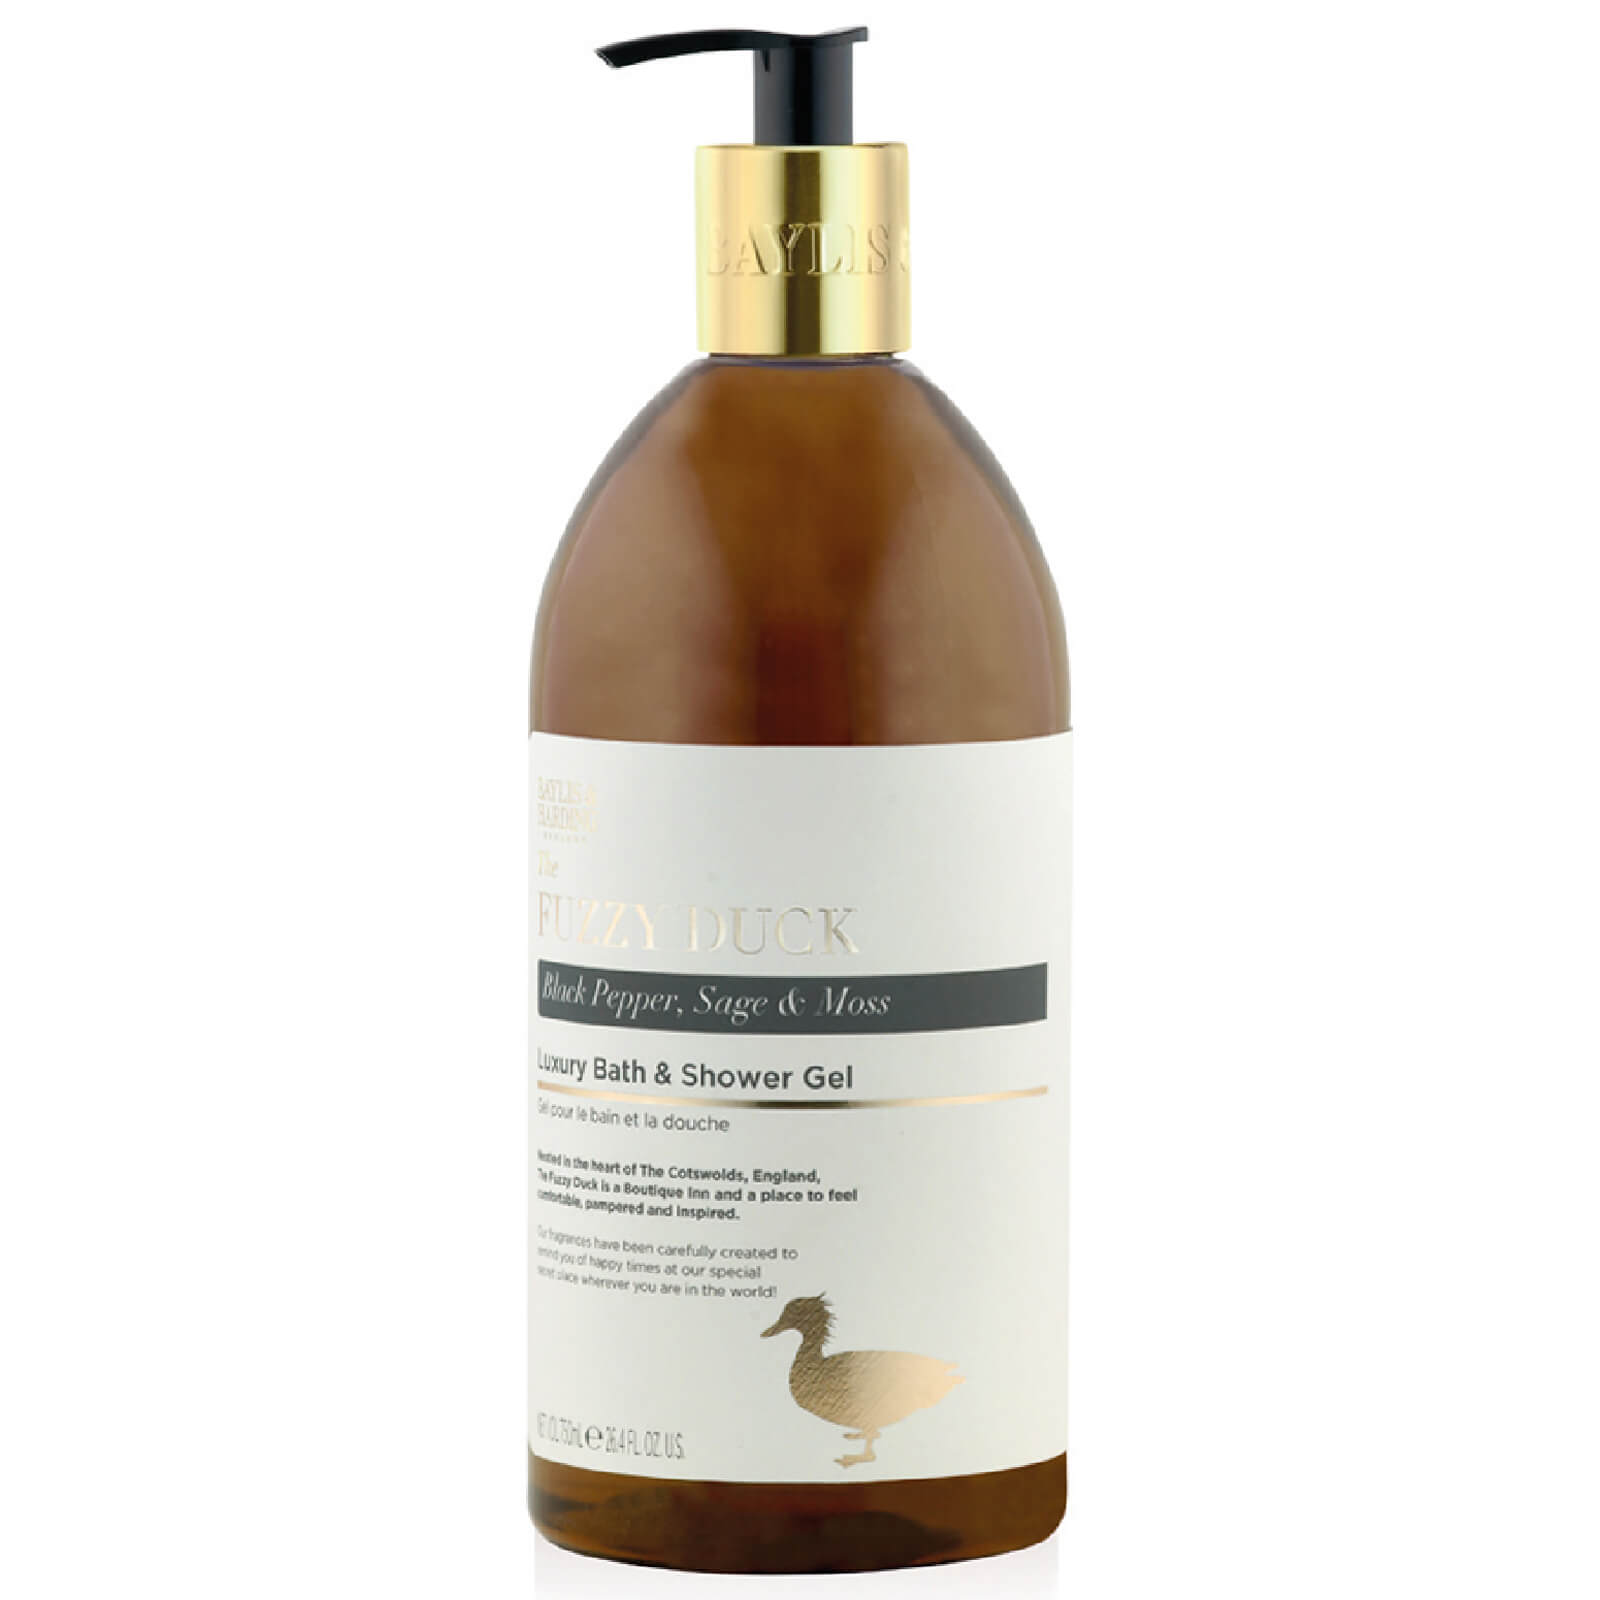 Baylis & Harding Fuzzy Duck Black Pepper, Sage & Moss 750ml Bottle Luxury Bath & Shower Gel